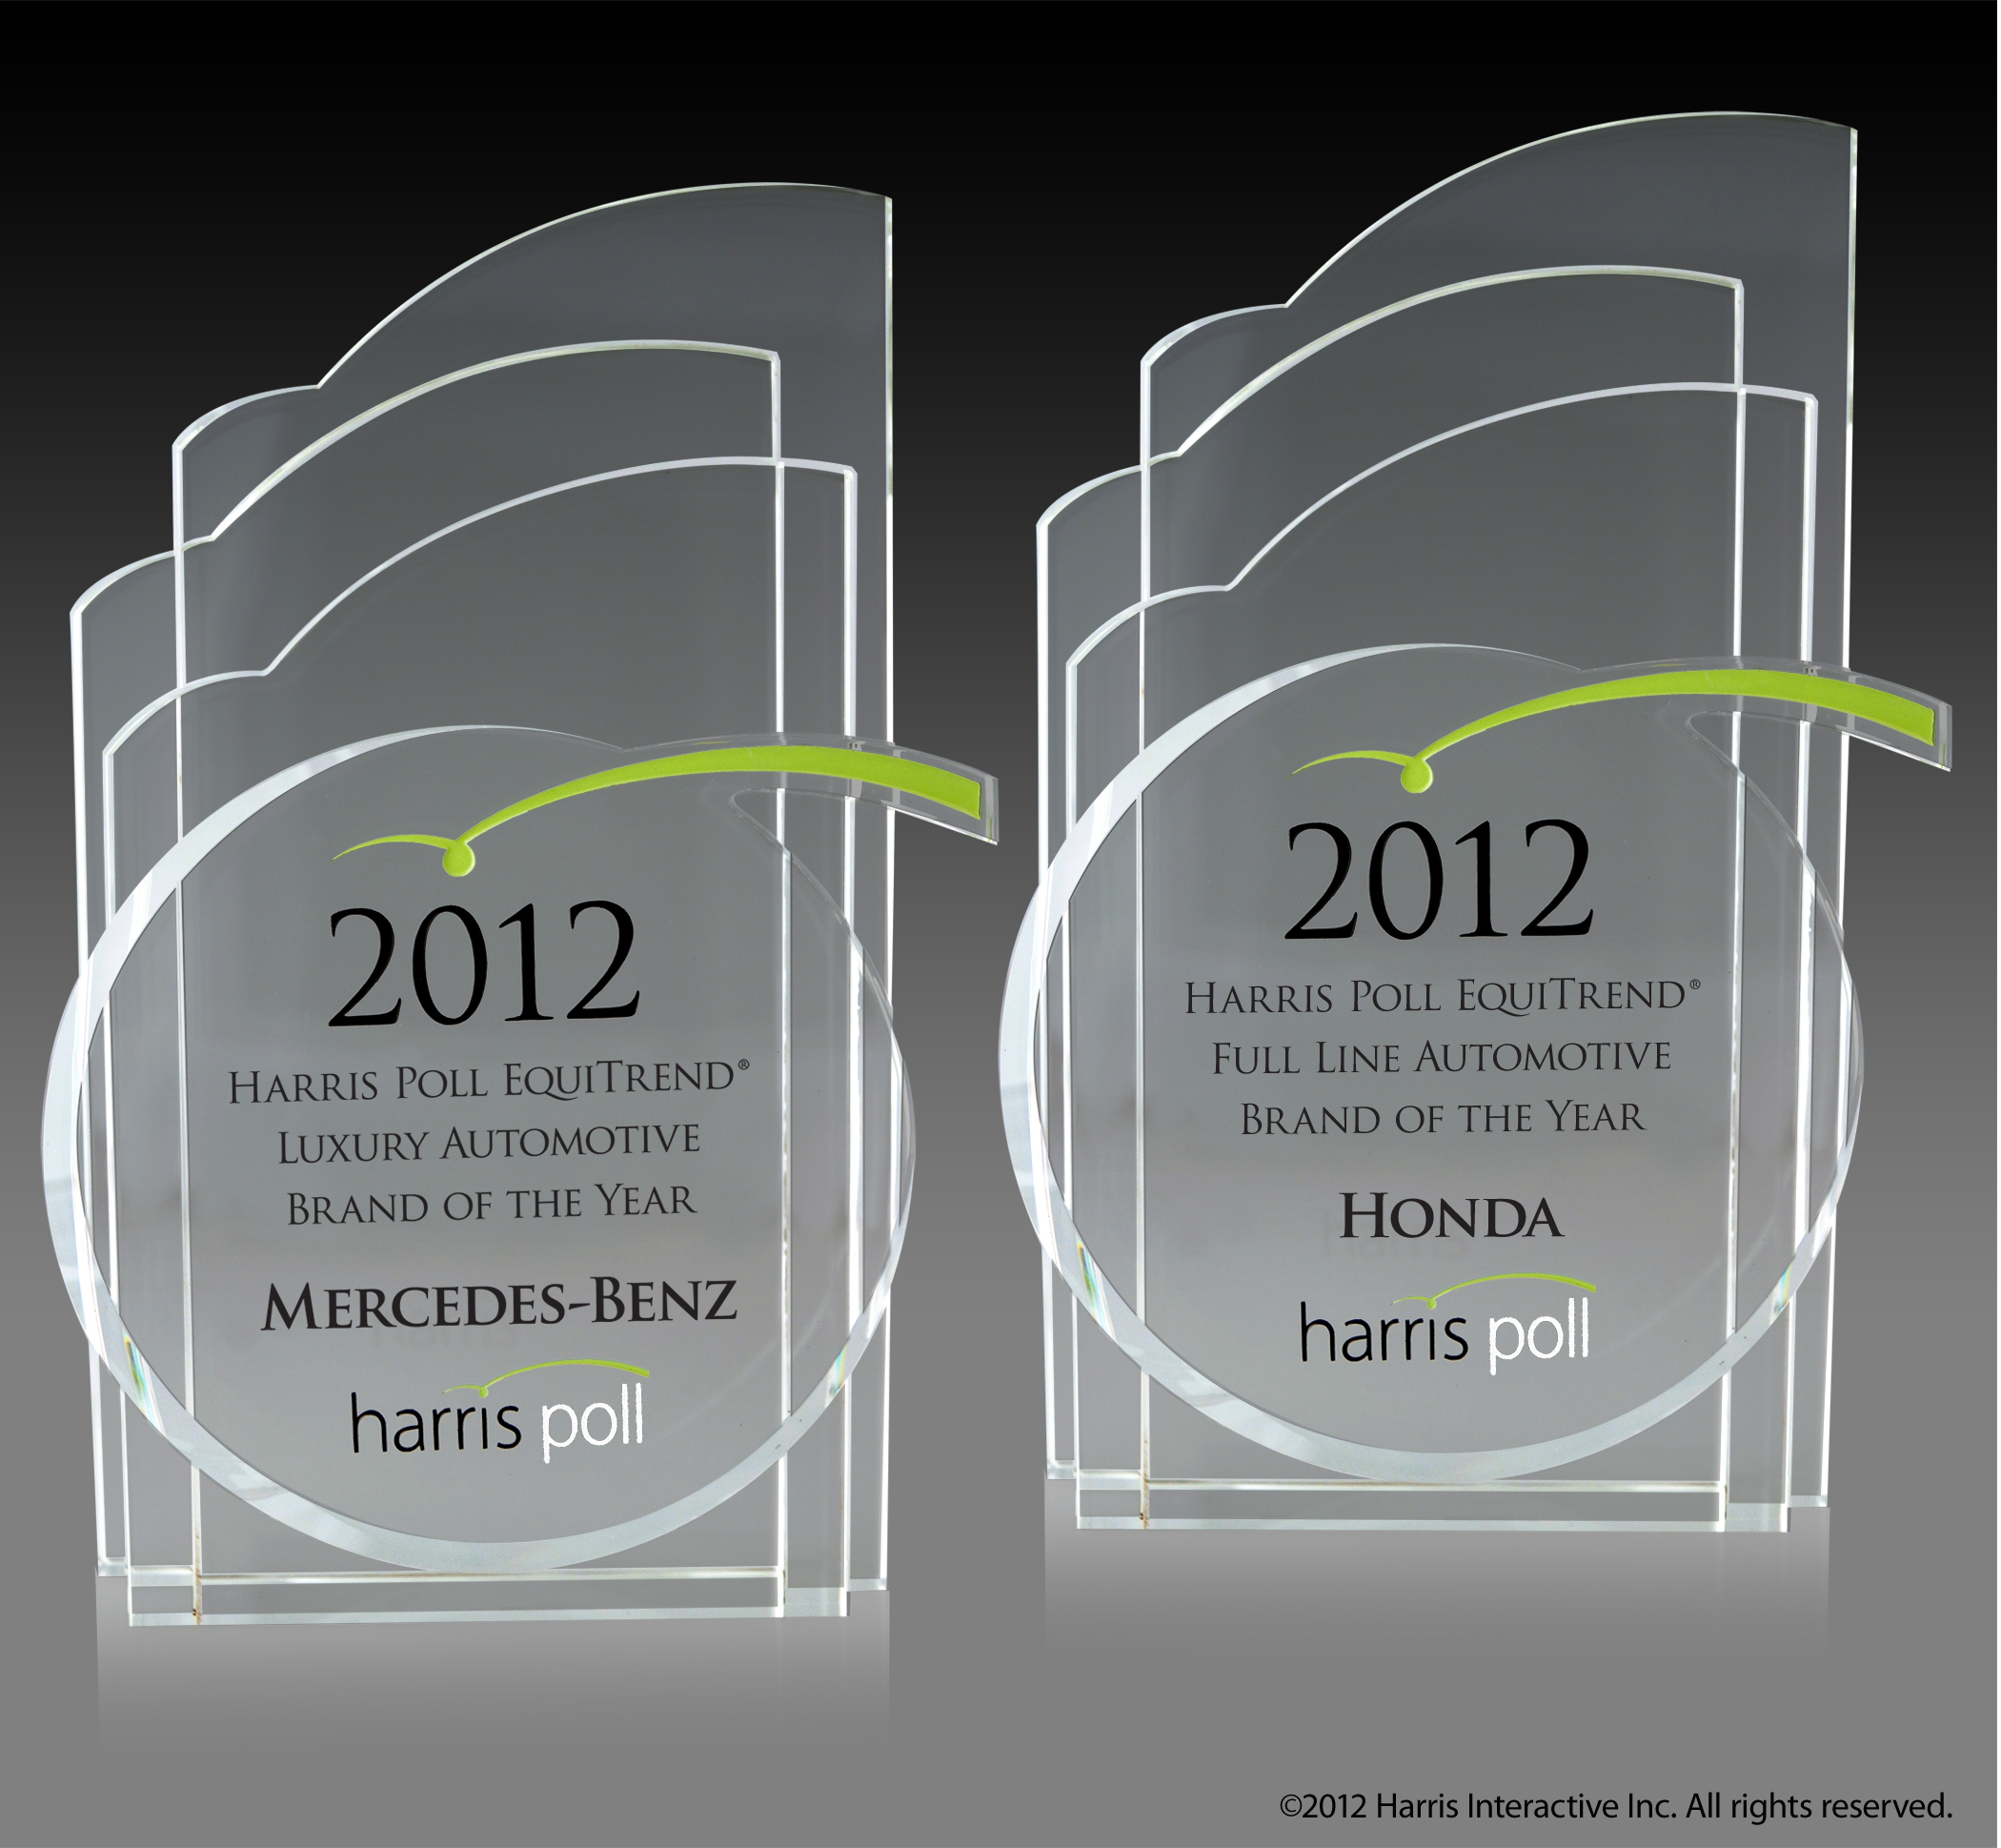 2012 Harris Poll EquiTrend Automotive Scorecard Mercedes Benz and